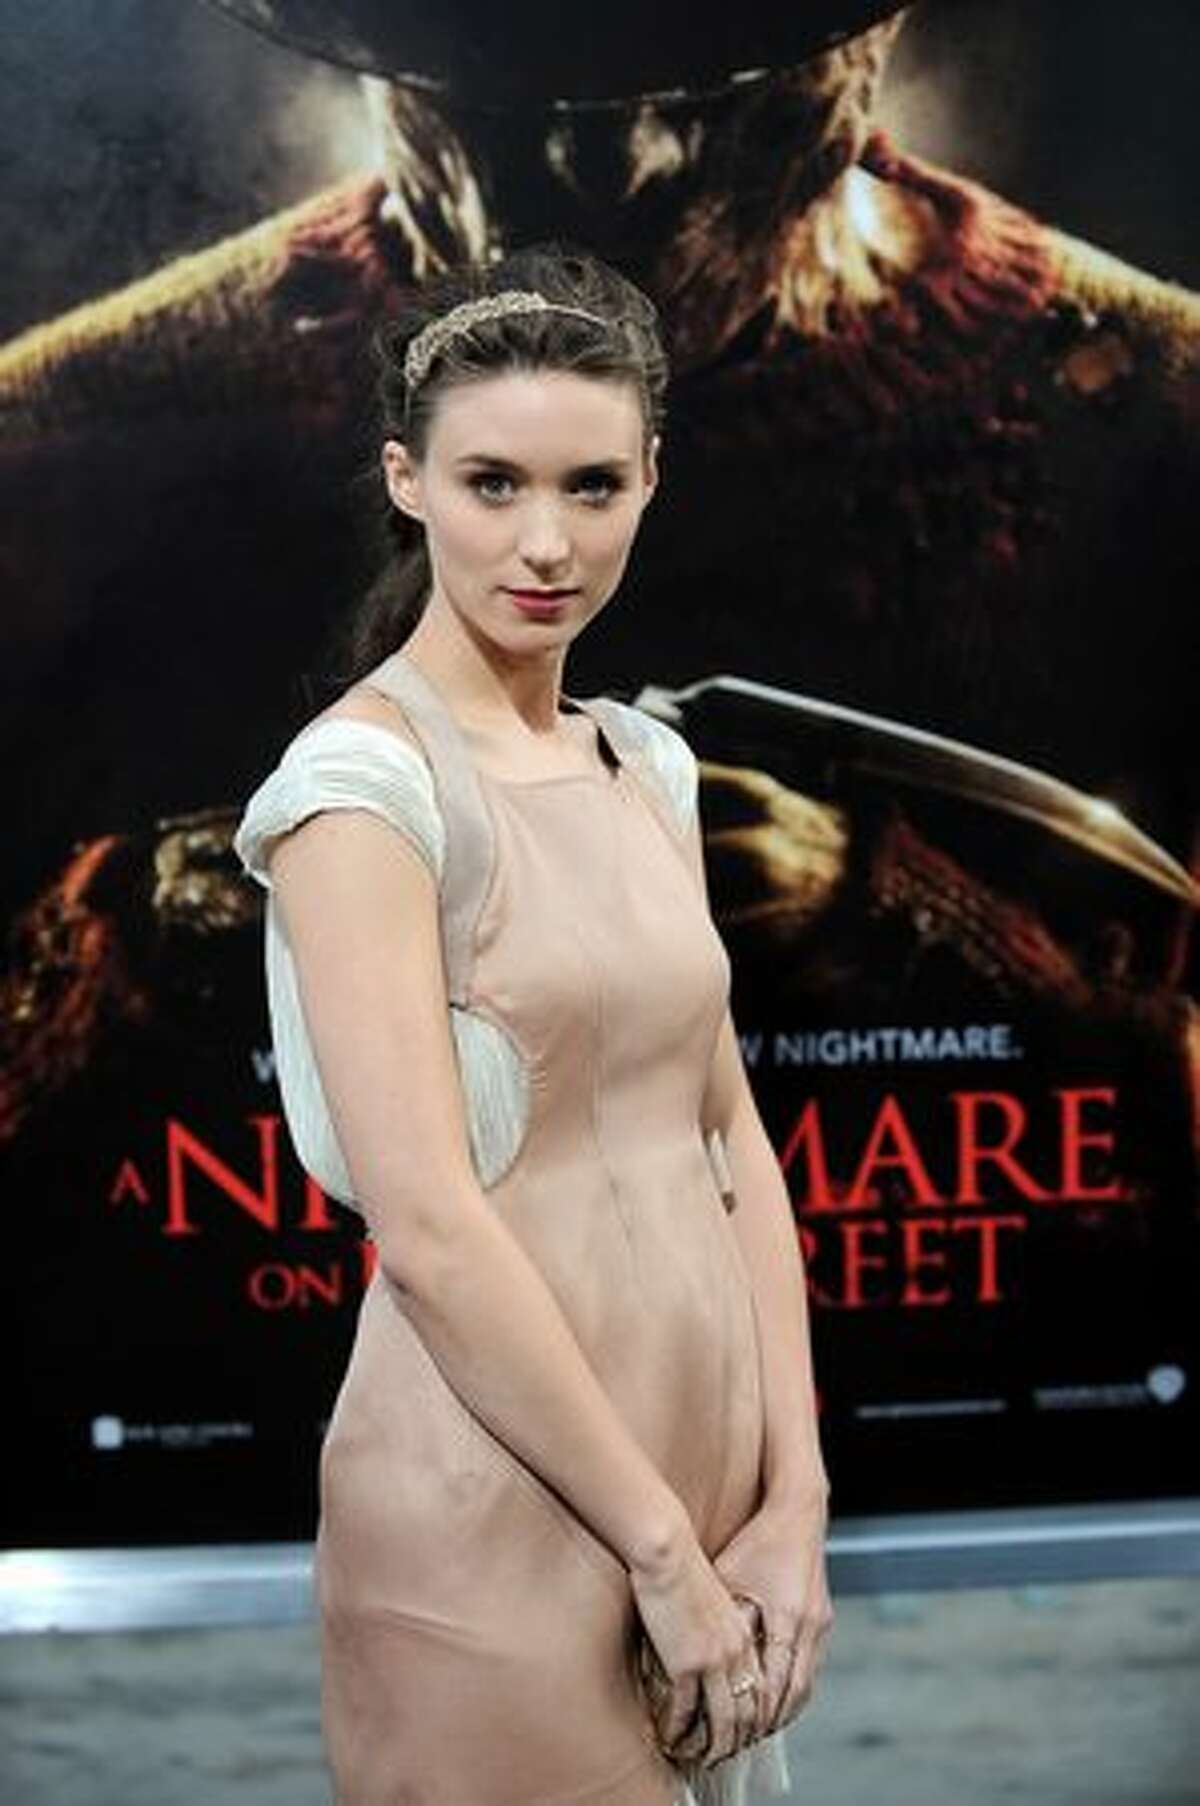 """Actress Rooney Mara arrives at the World premiere of """"A Nightmare on Elm Street"""" in Hollywood, California, on April 27. Photo credit GABRIEL BOUYS/AFP/Getty Images"""